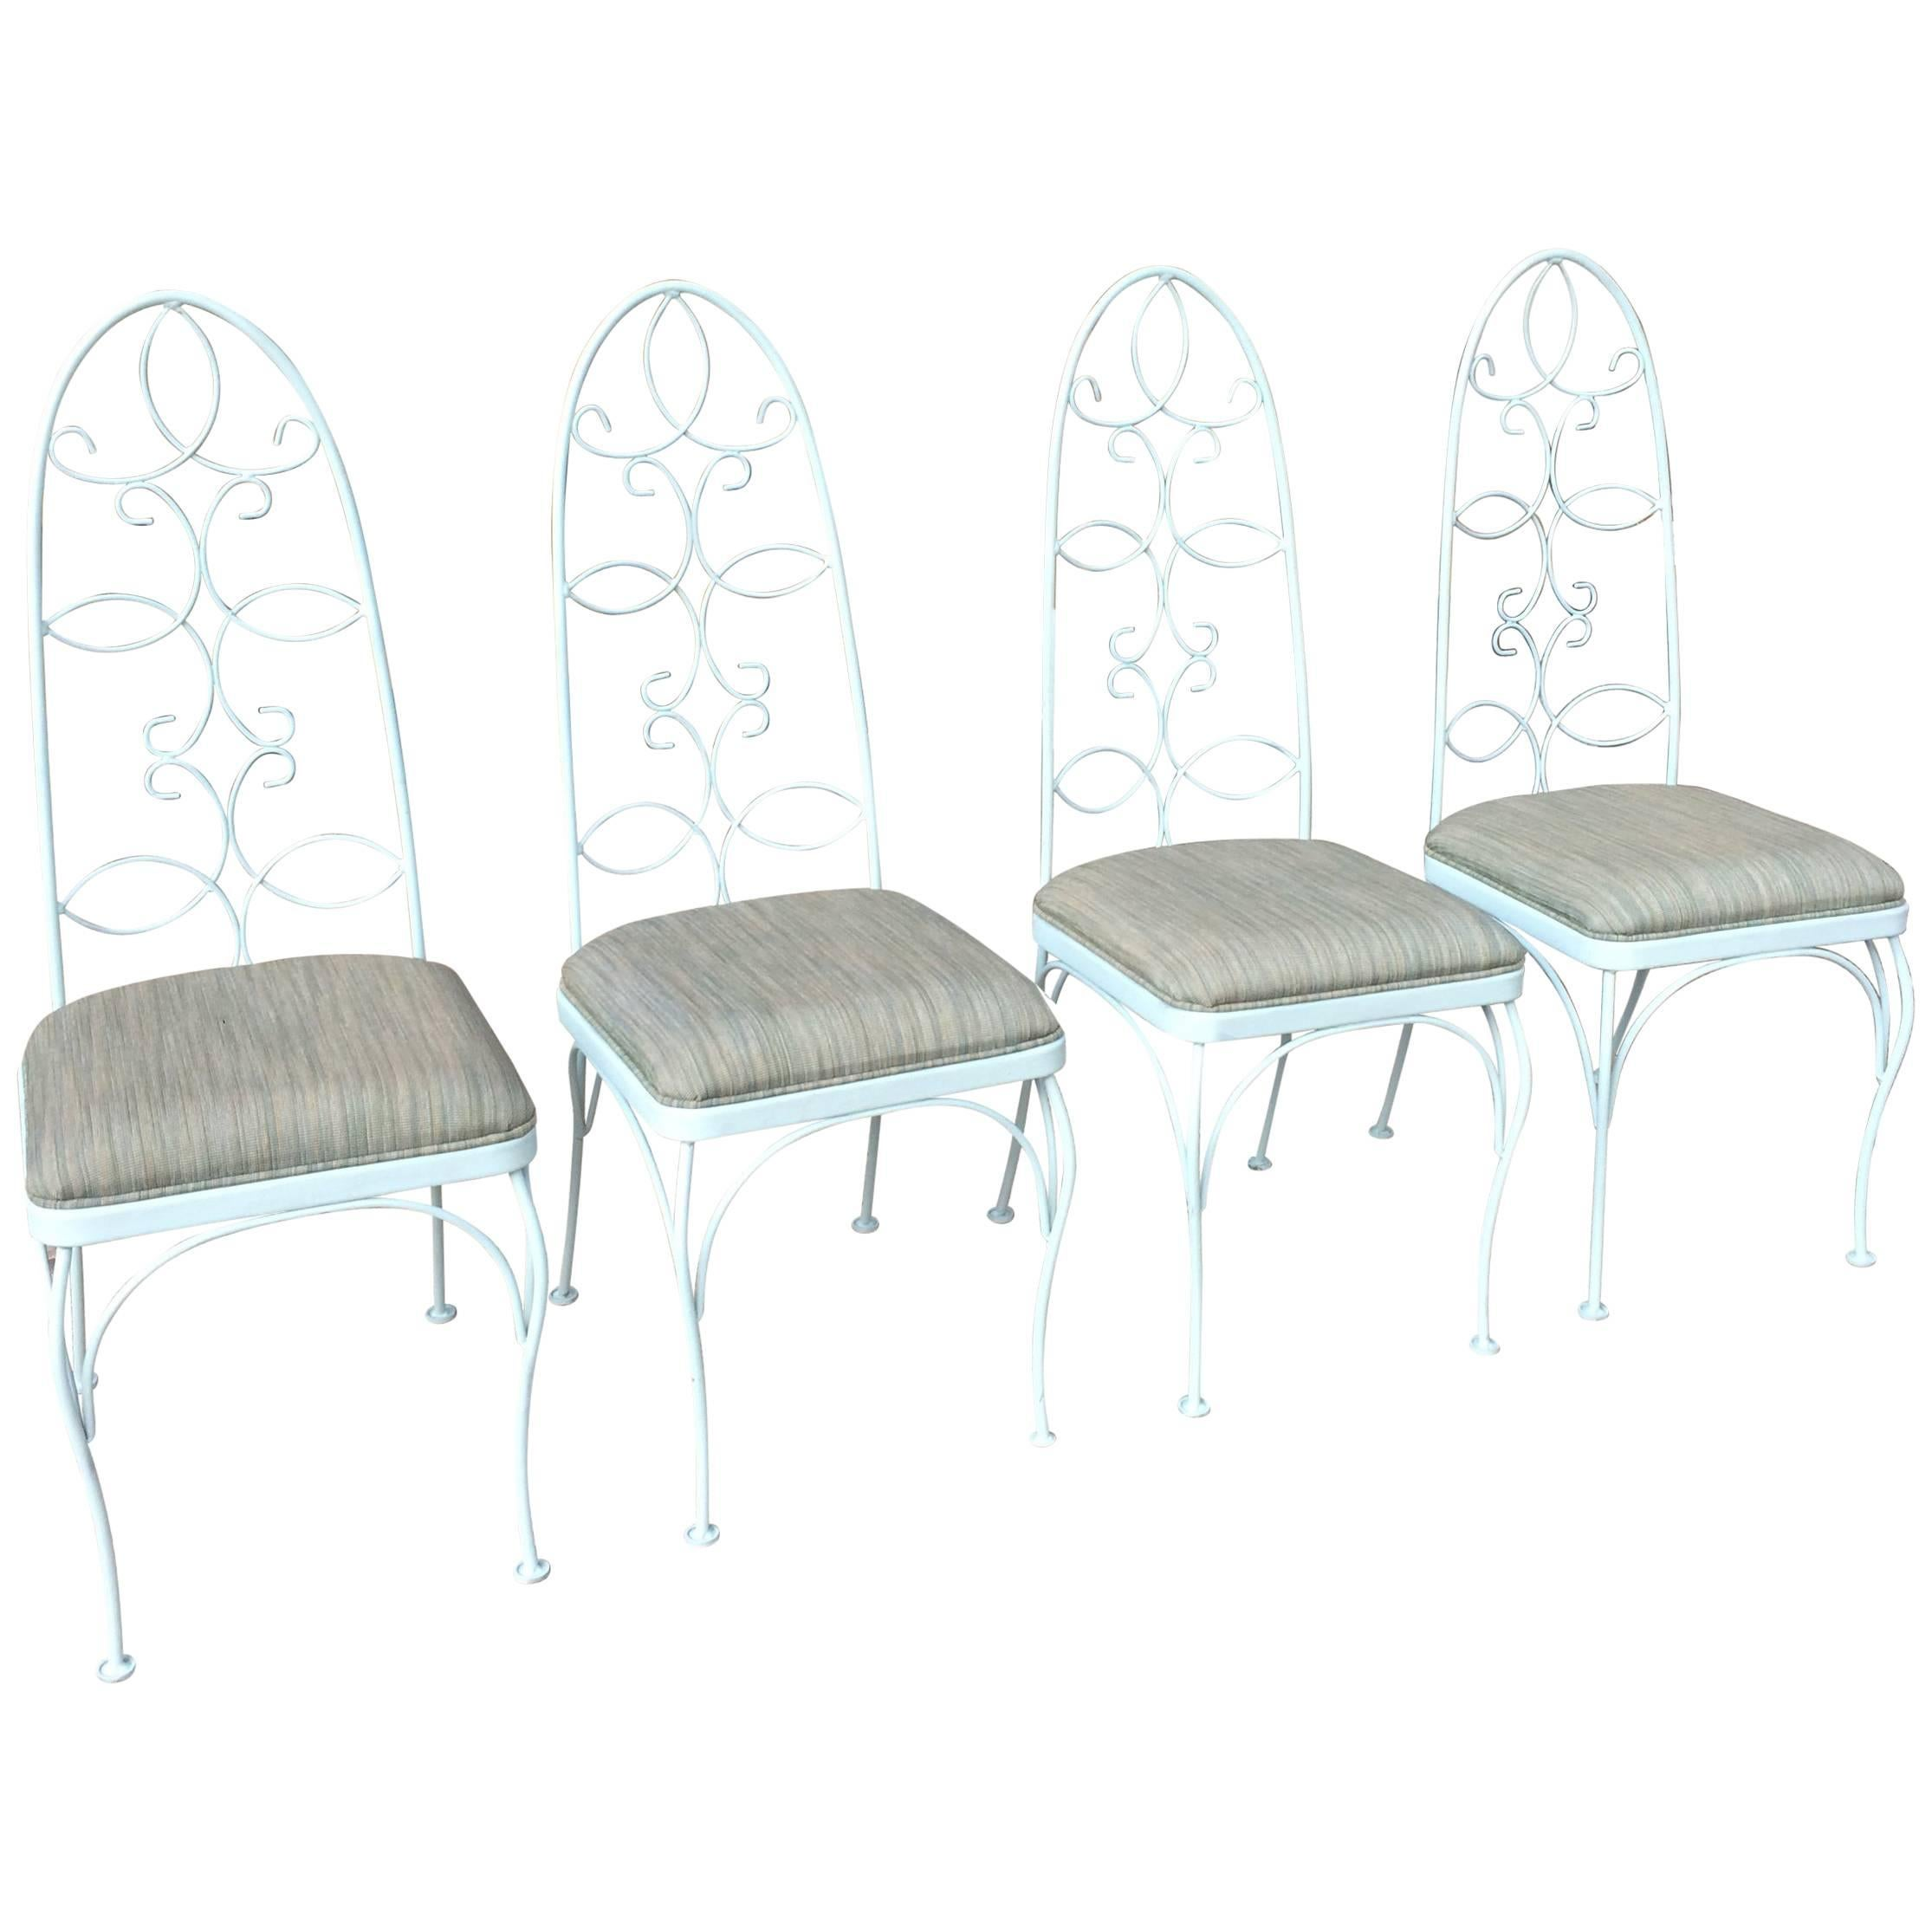 Wrought iron patio chairs Coil Spring Mid Century High Back Wrought Iron Patio Garden Dining Chair Set For Sale 1stdibs Mid Century High Back Wrought Iron Patio Garden Dining Chair Set For